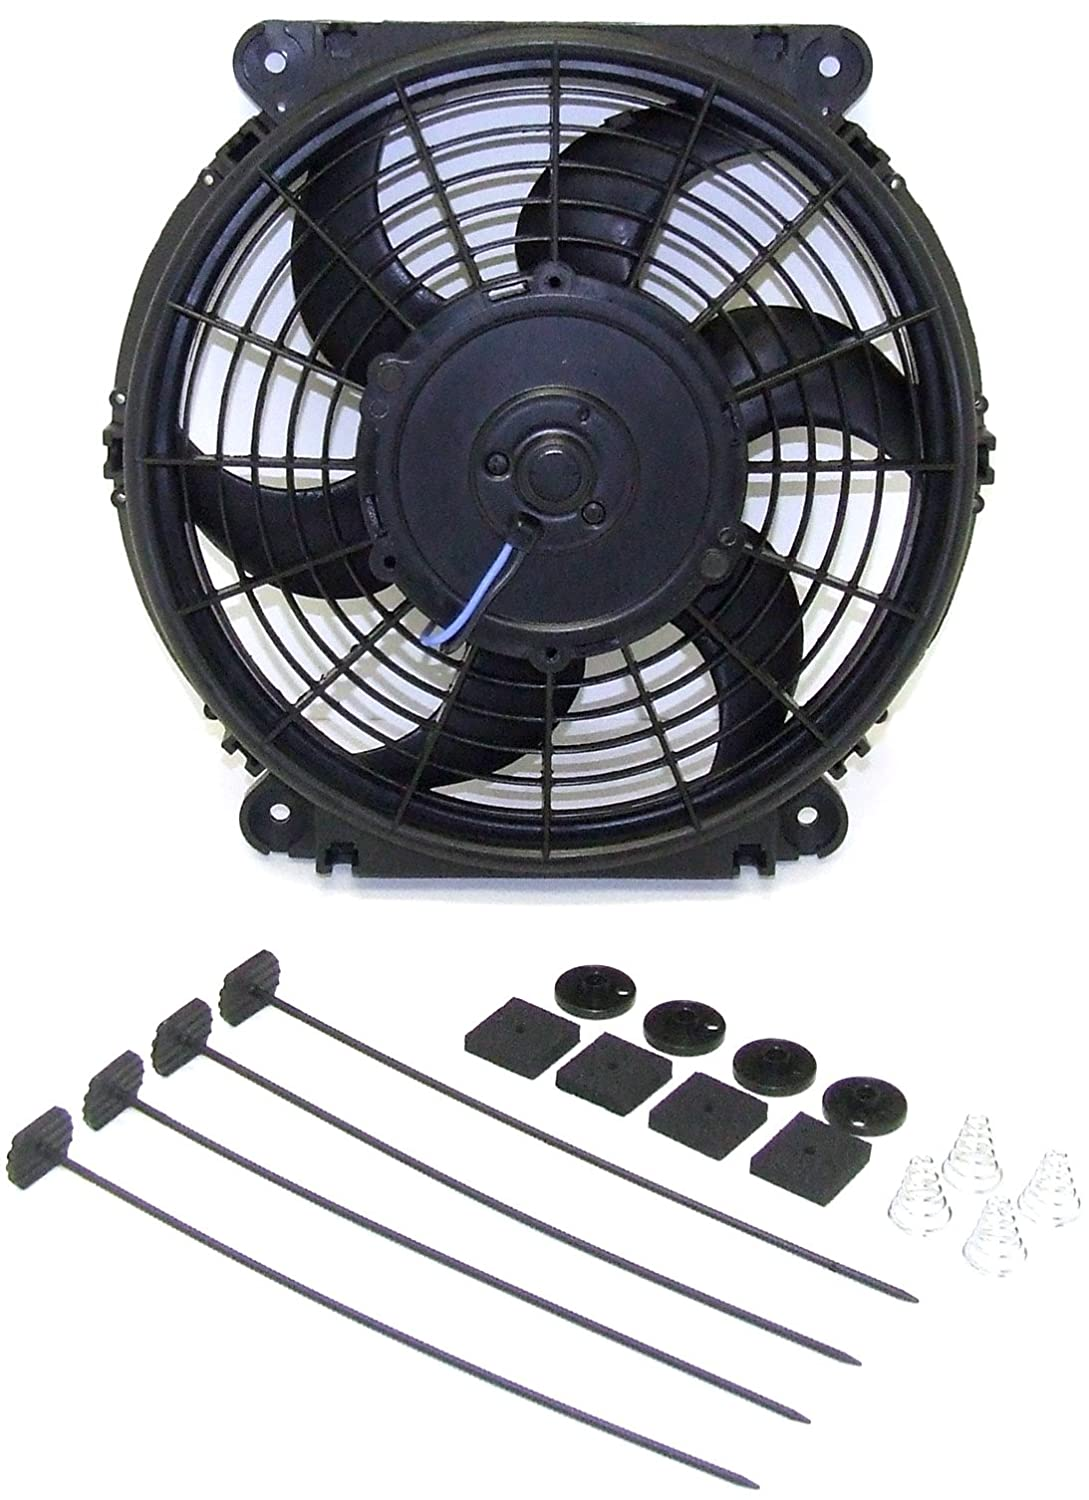 Hayden Automotive 3670 Rapid-Cool Thin-Line Electric Fan